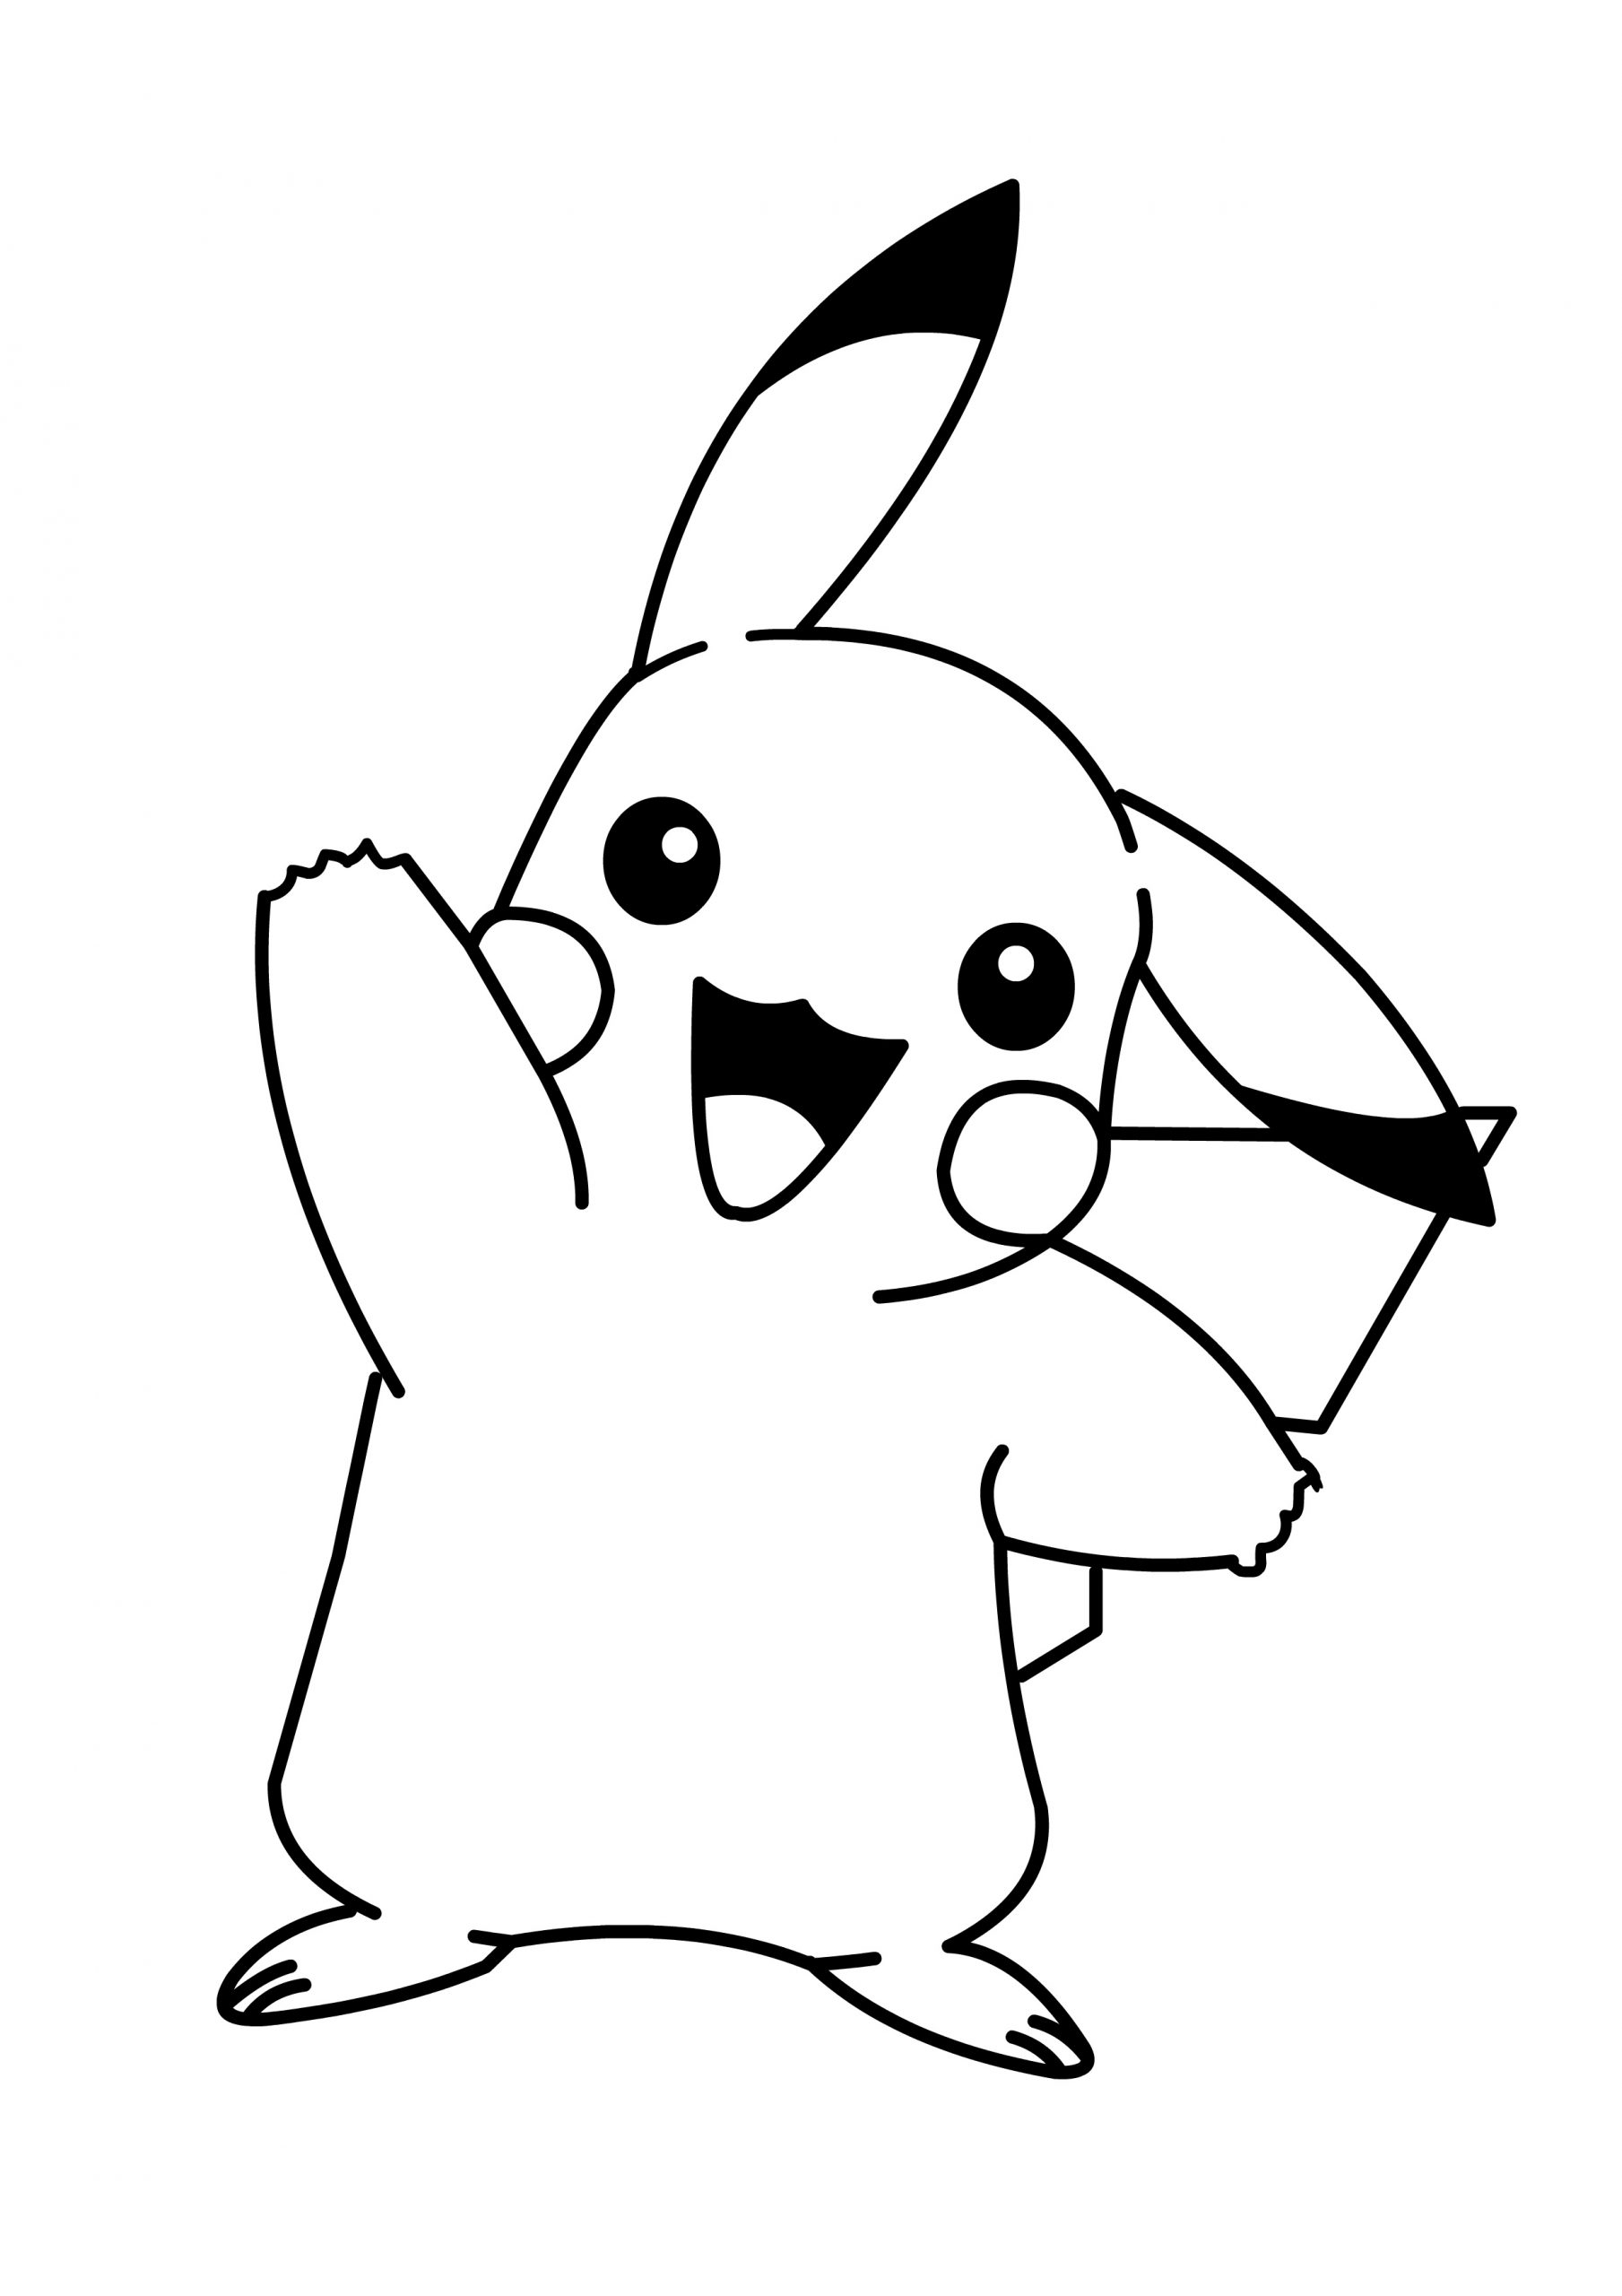 Pikachu Cute Pokemon Coloring Pages